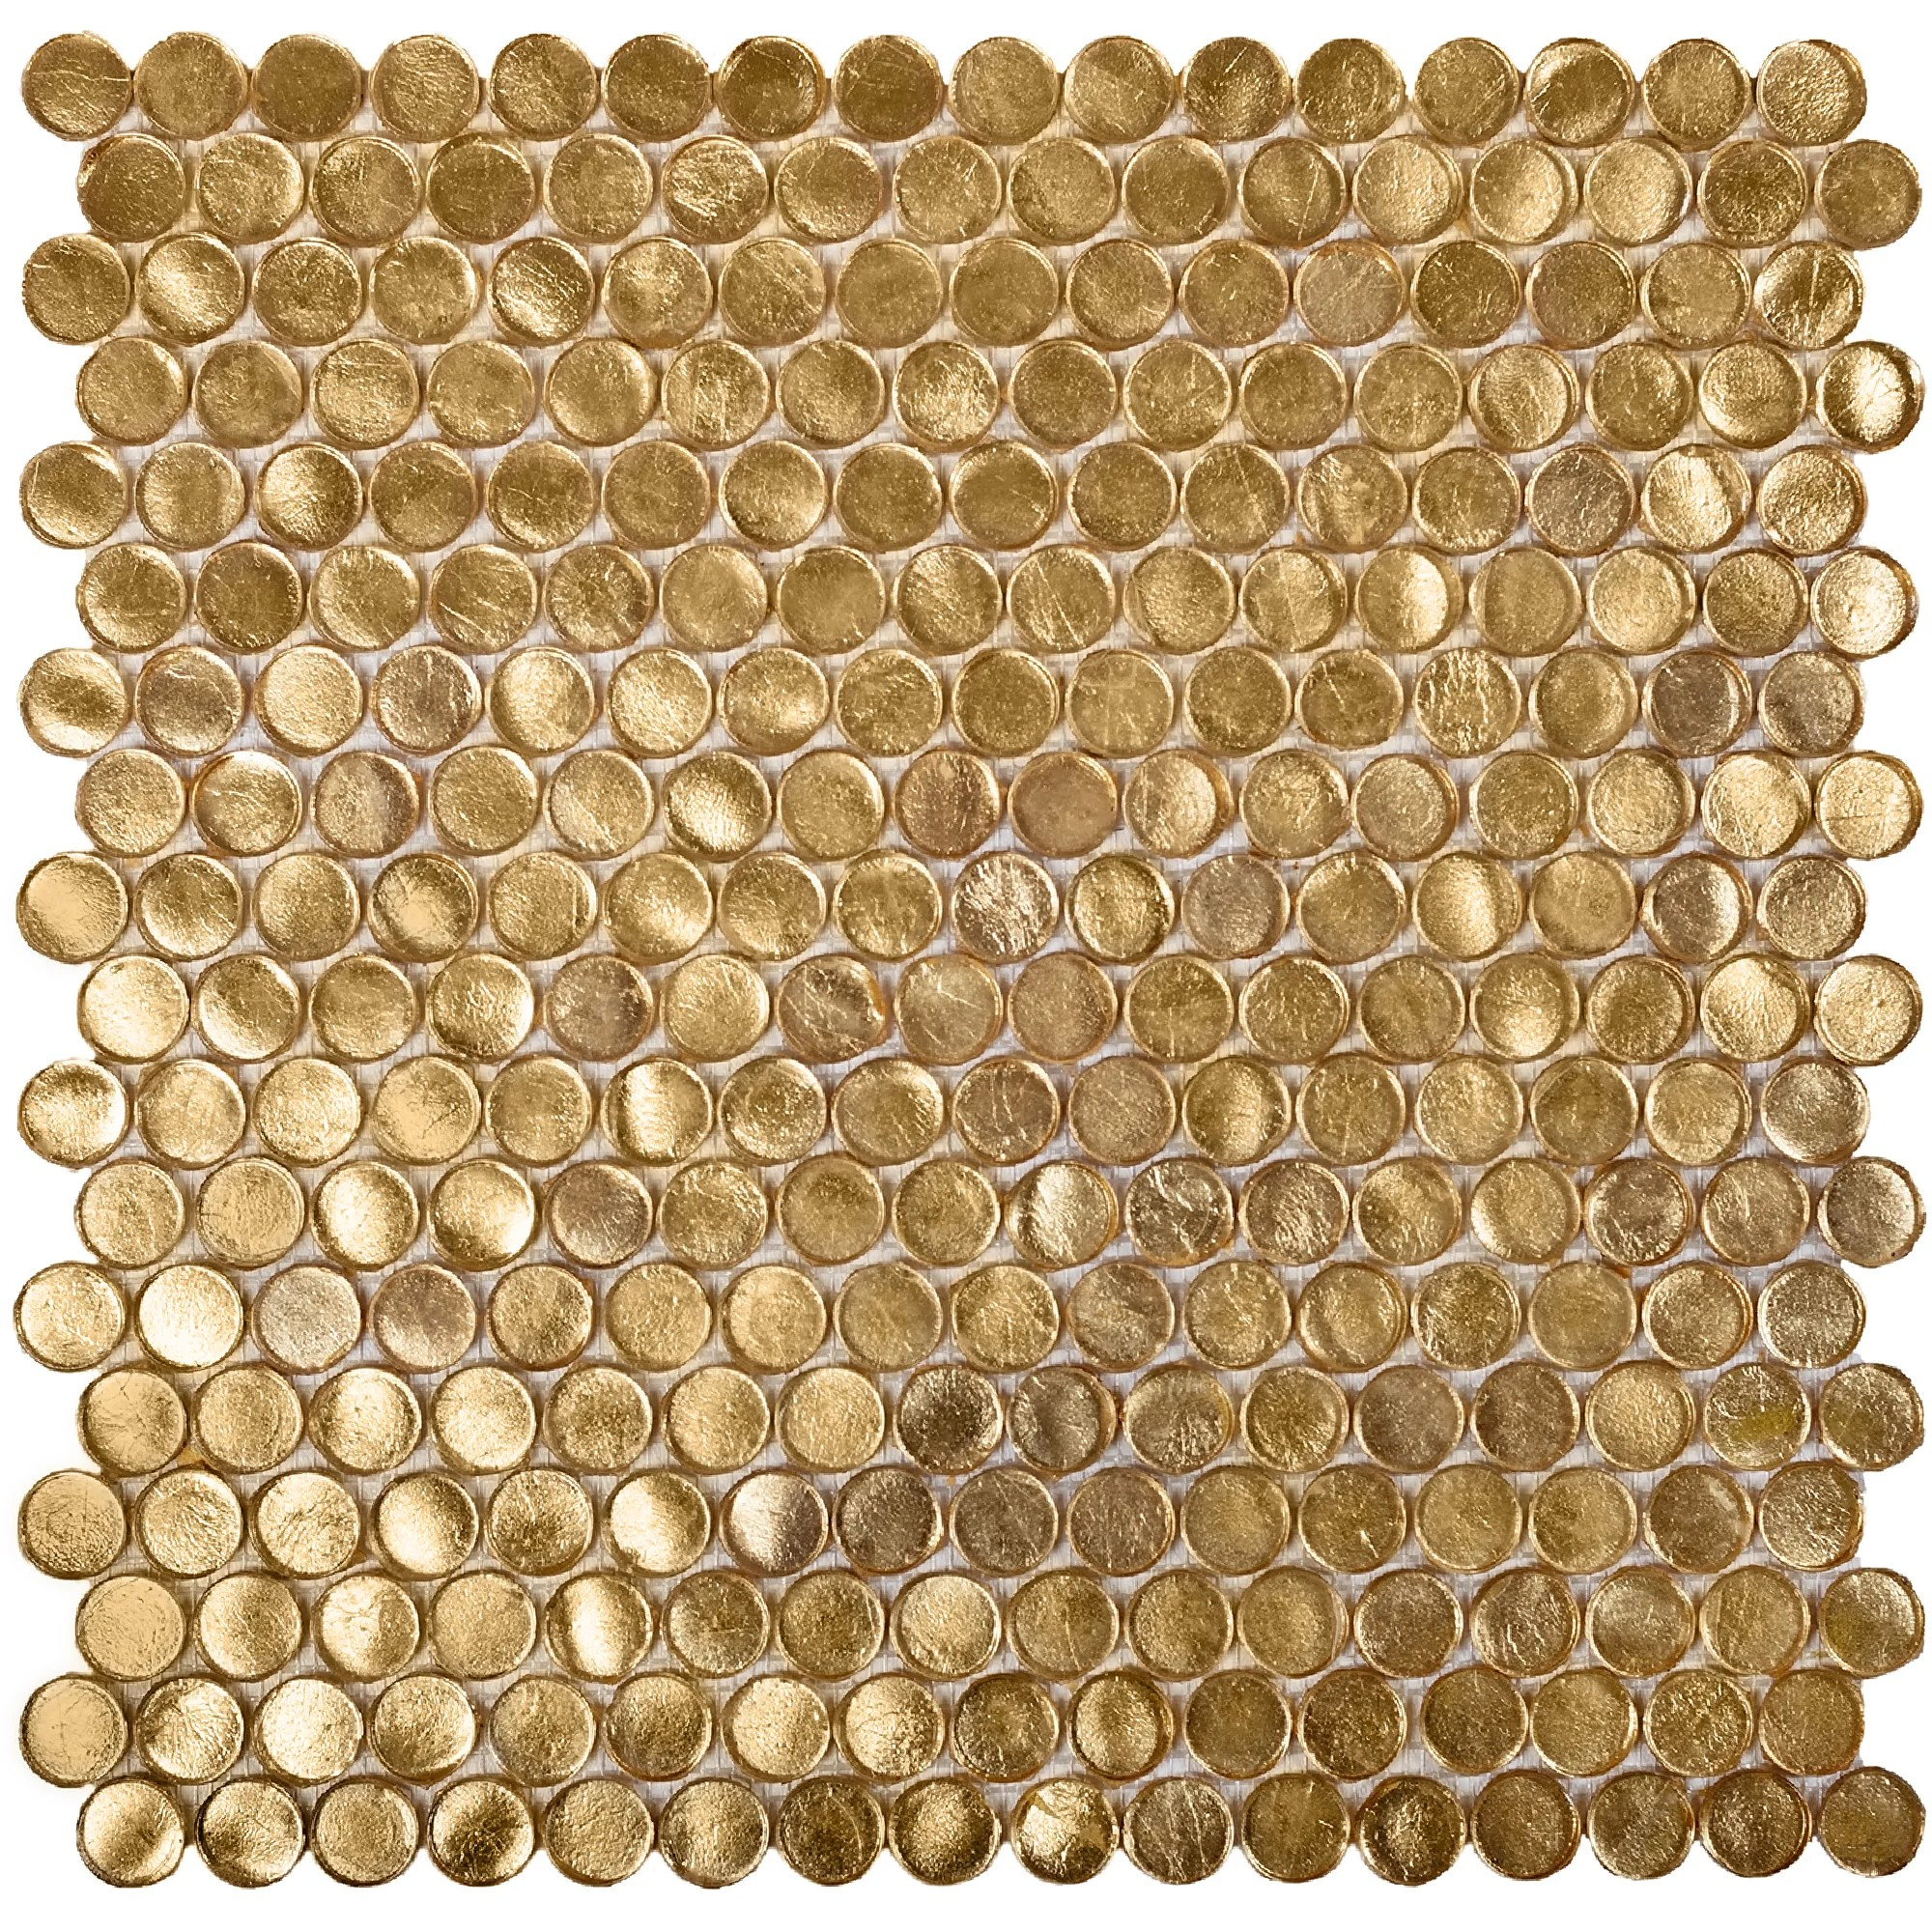 apollo tile gold glass penny round mosaic tile 12 2 x 12 2 sheet for kitchen bathroom or wall panel 10 pack